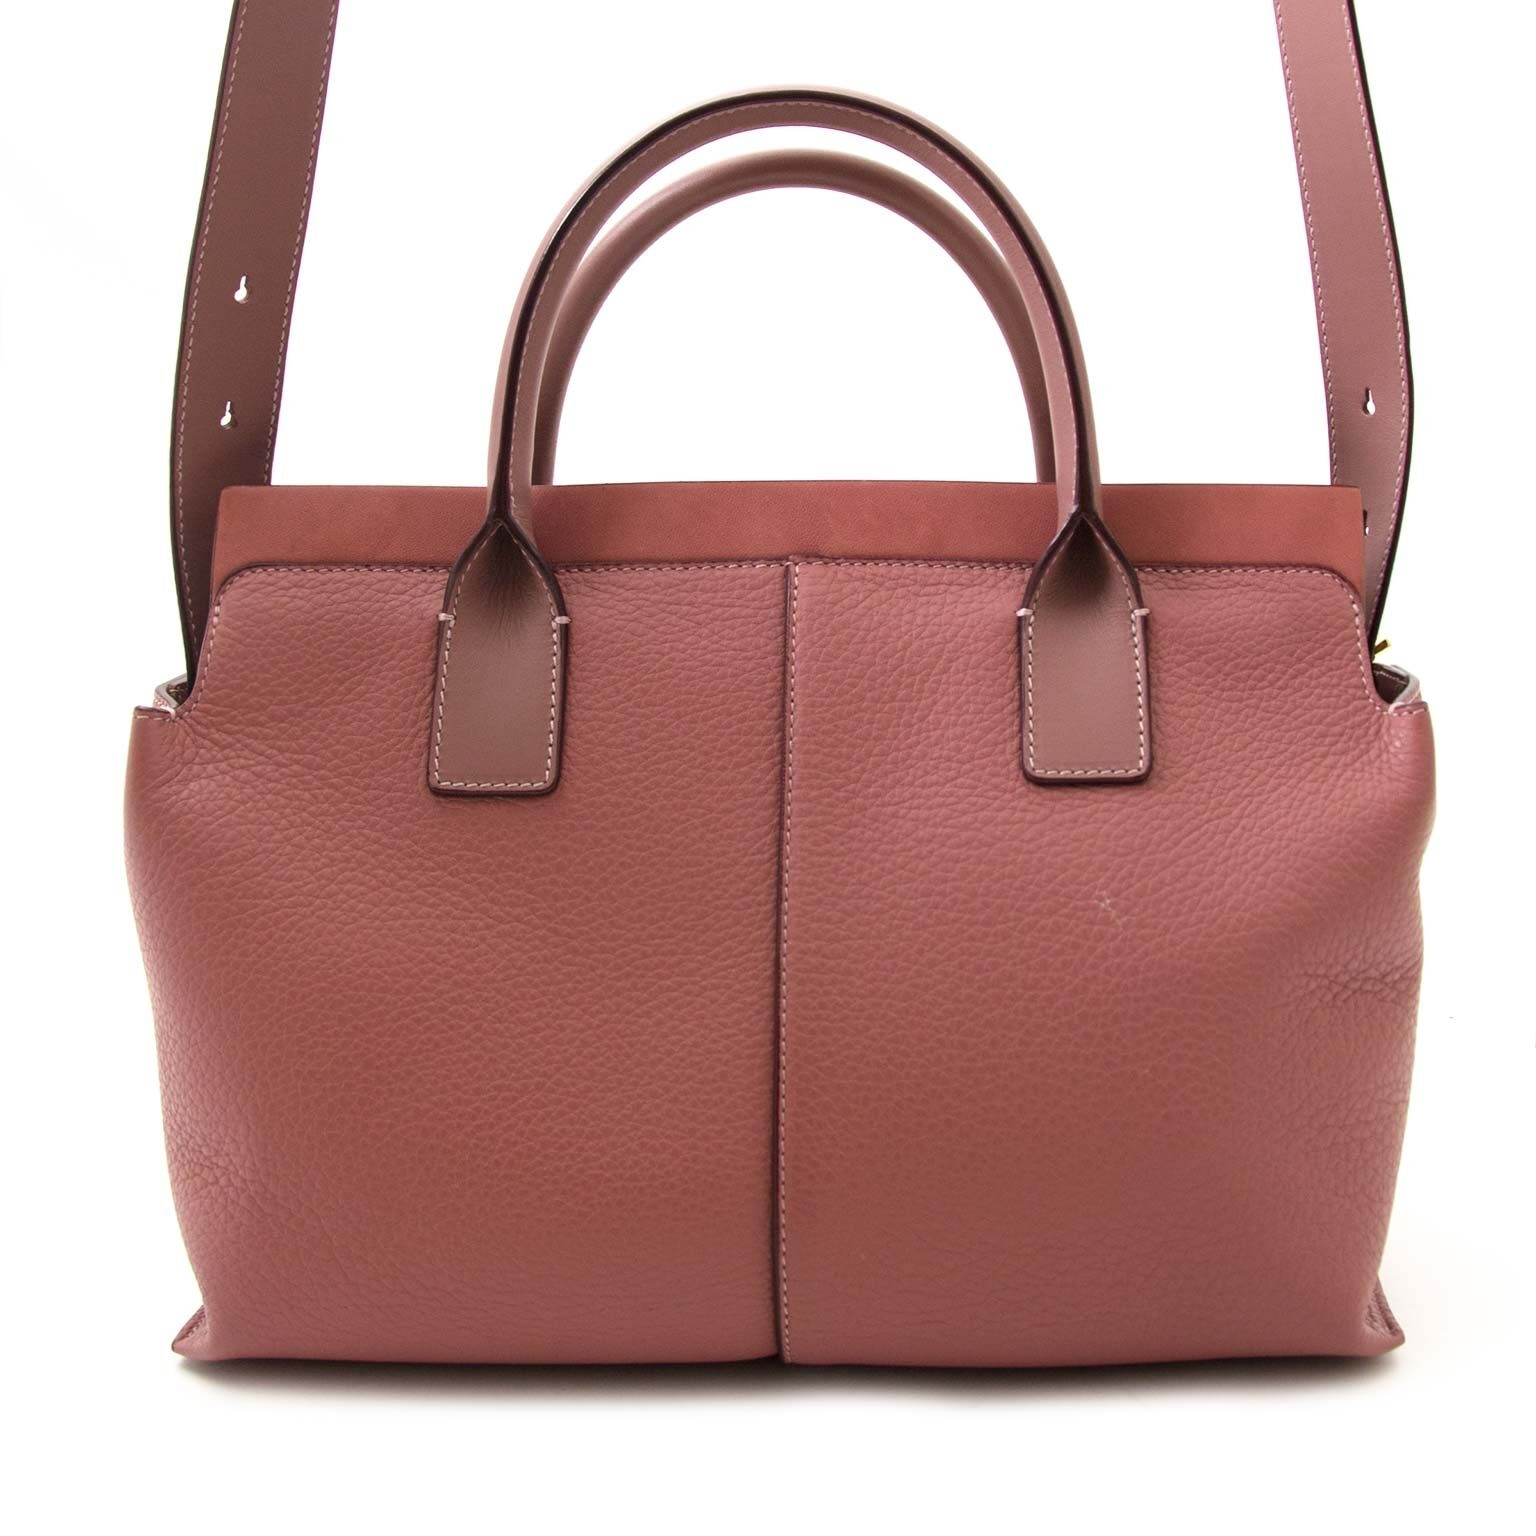 buy secondhand Chloe Pink Leather Cate Satchel Bag at labellov for a good price